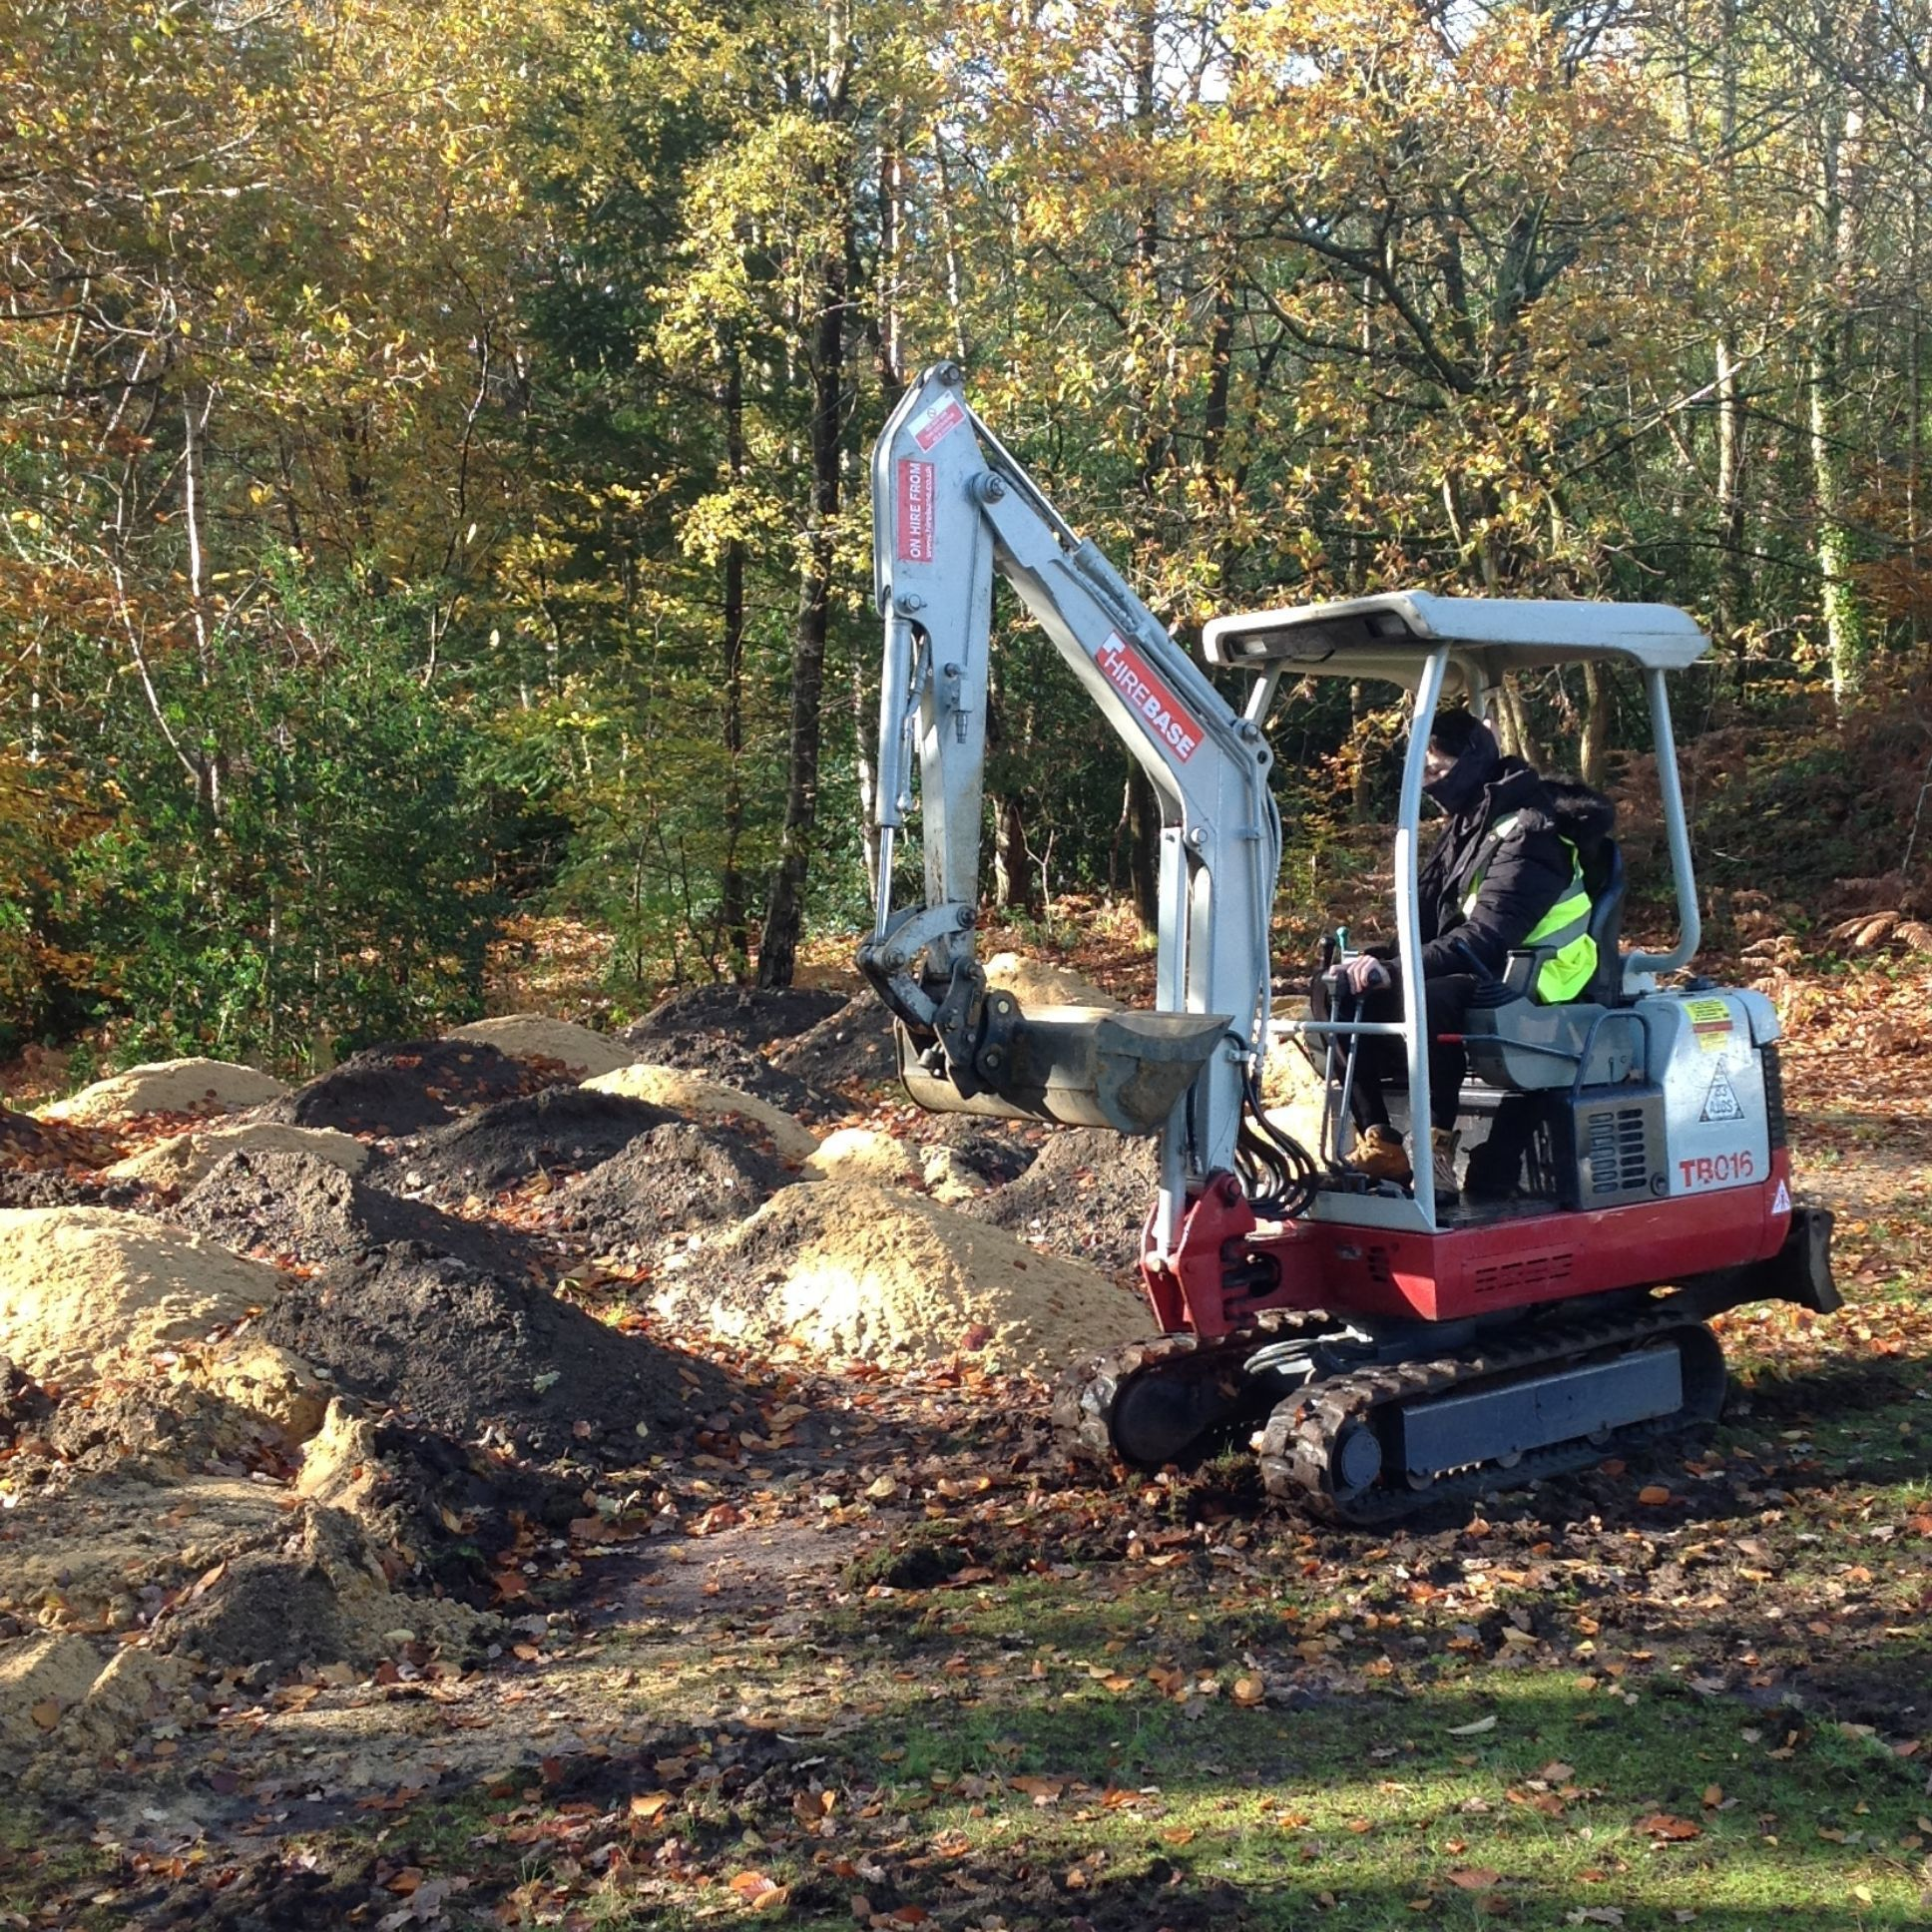 Young man in digger in woodland setting